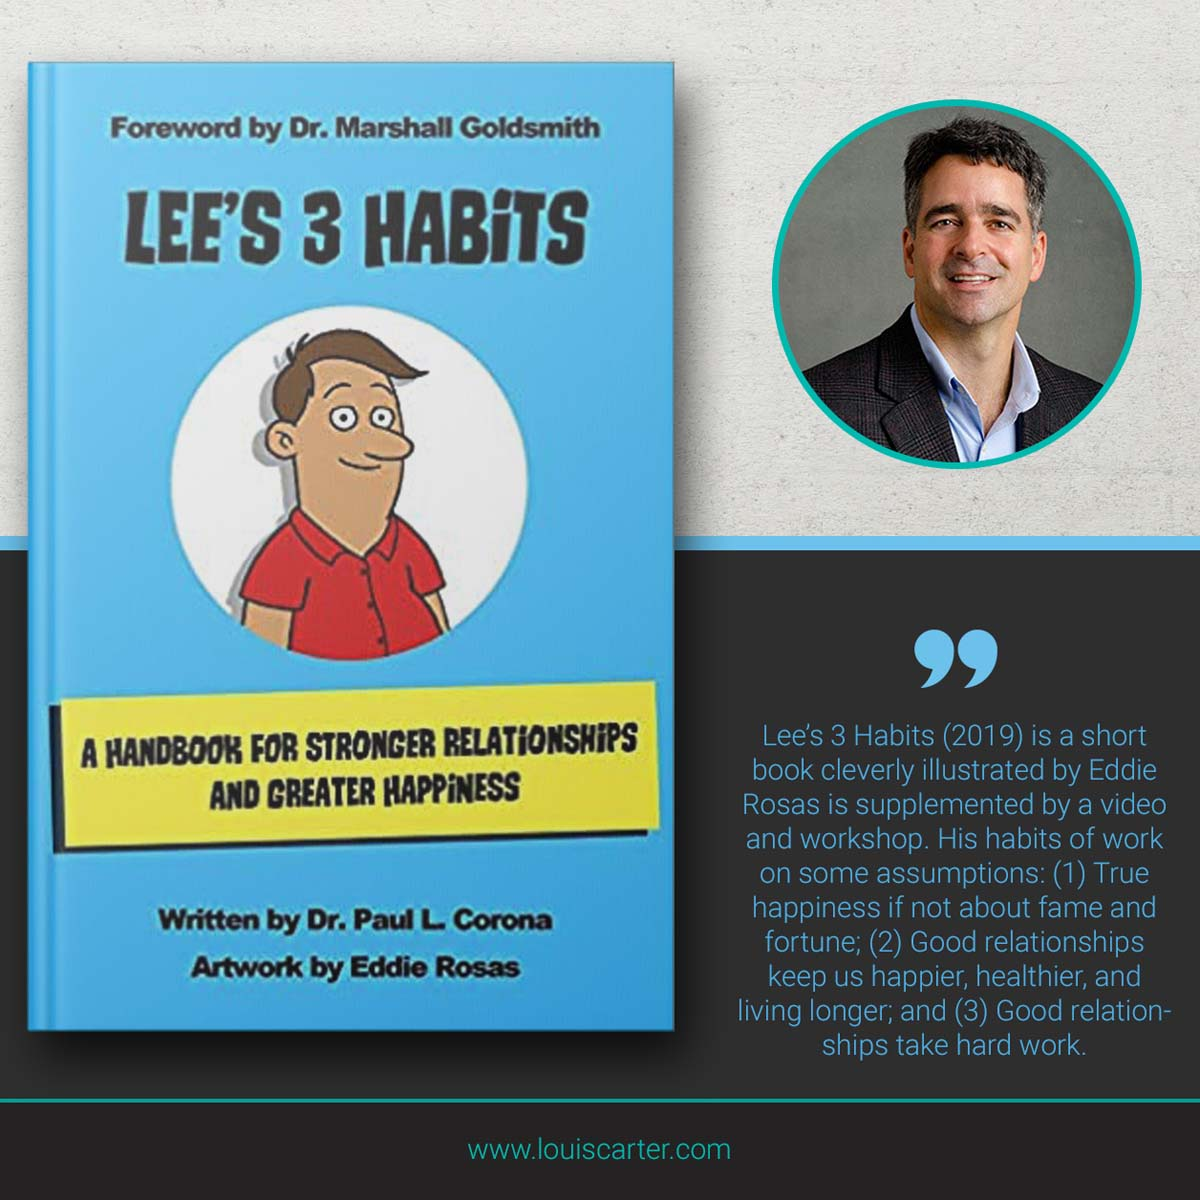 Image of Lee's 3 Habits book on leadership by Paul L Corona